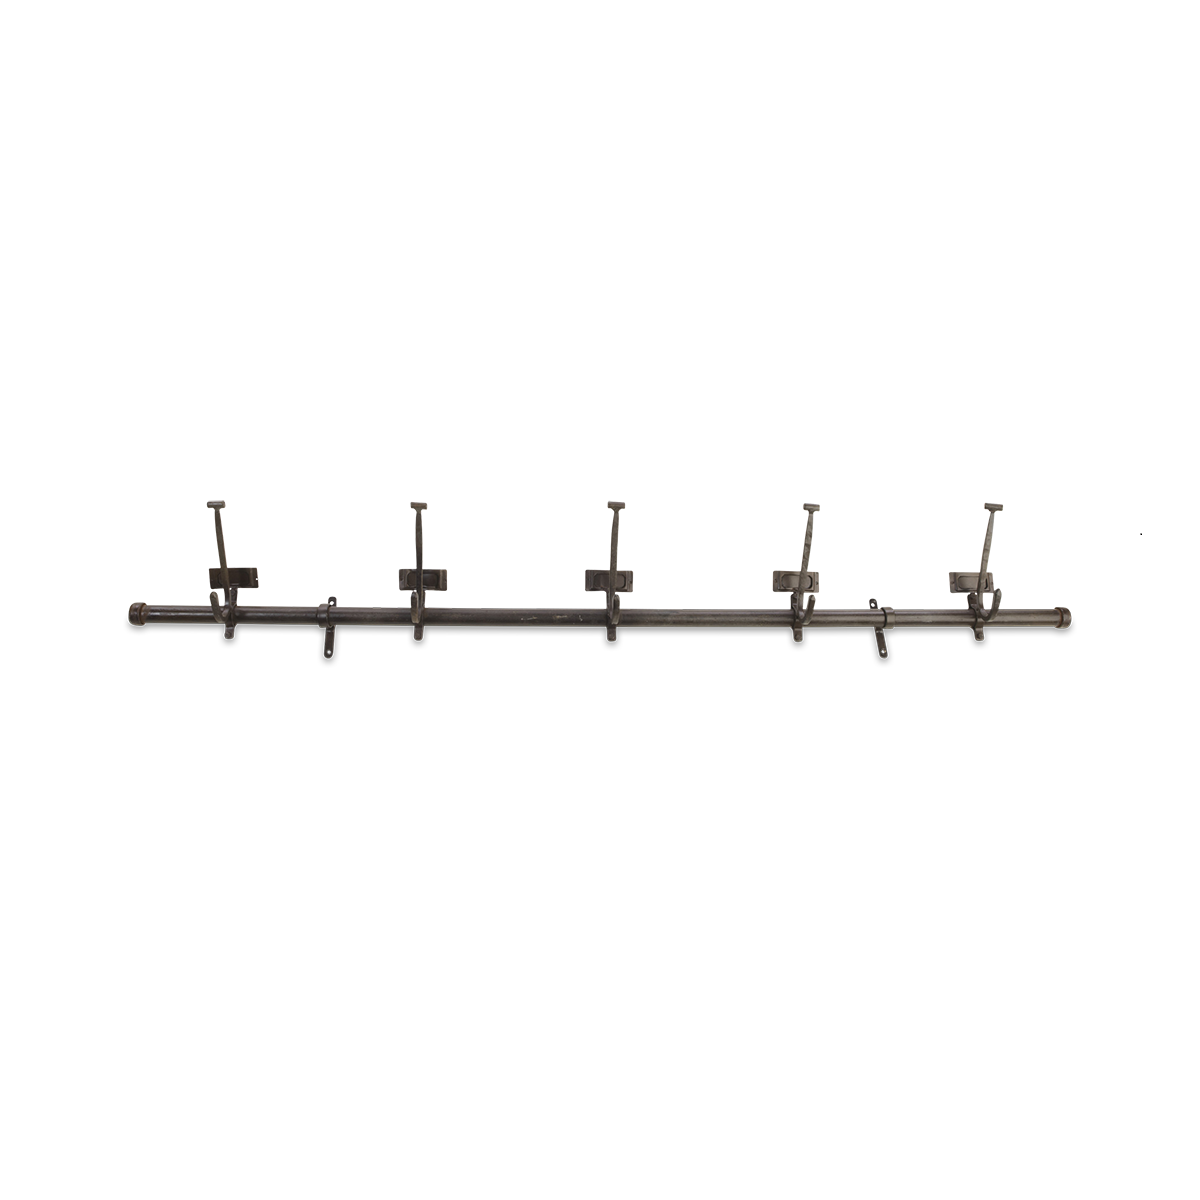 em_home-coat-vintage-iron-school-rack-hooks-home-decor-VH01 – 1 (1)